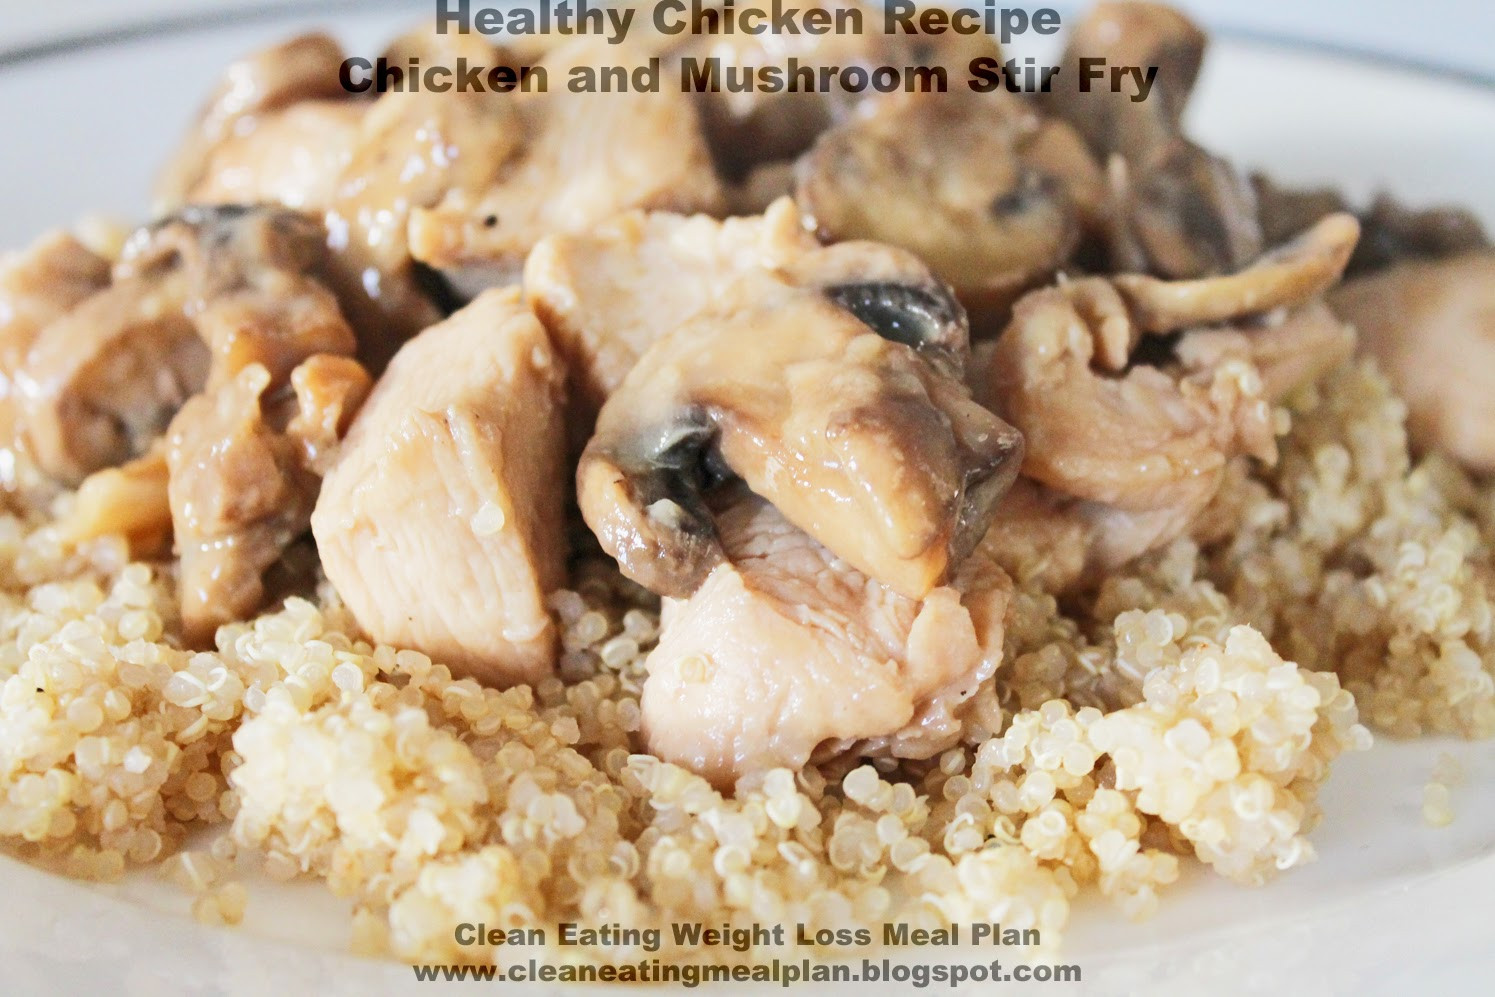 Healthy Chicken Recipes For Weight Loss  Healthy Chicken Recipe Chicken and Mushroom Stir Fry